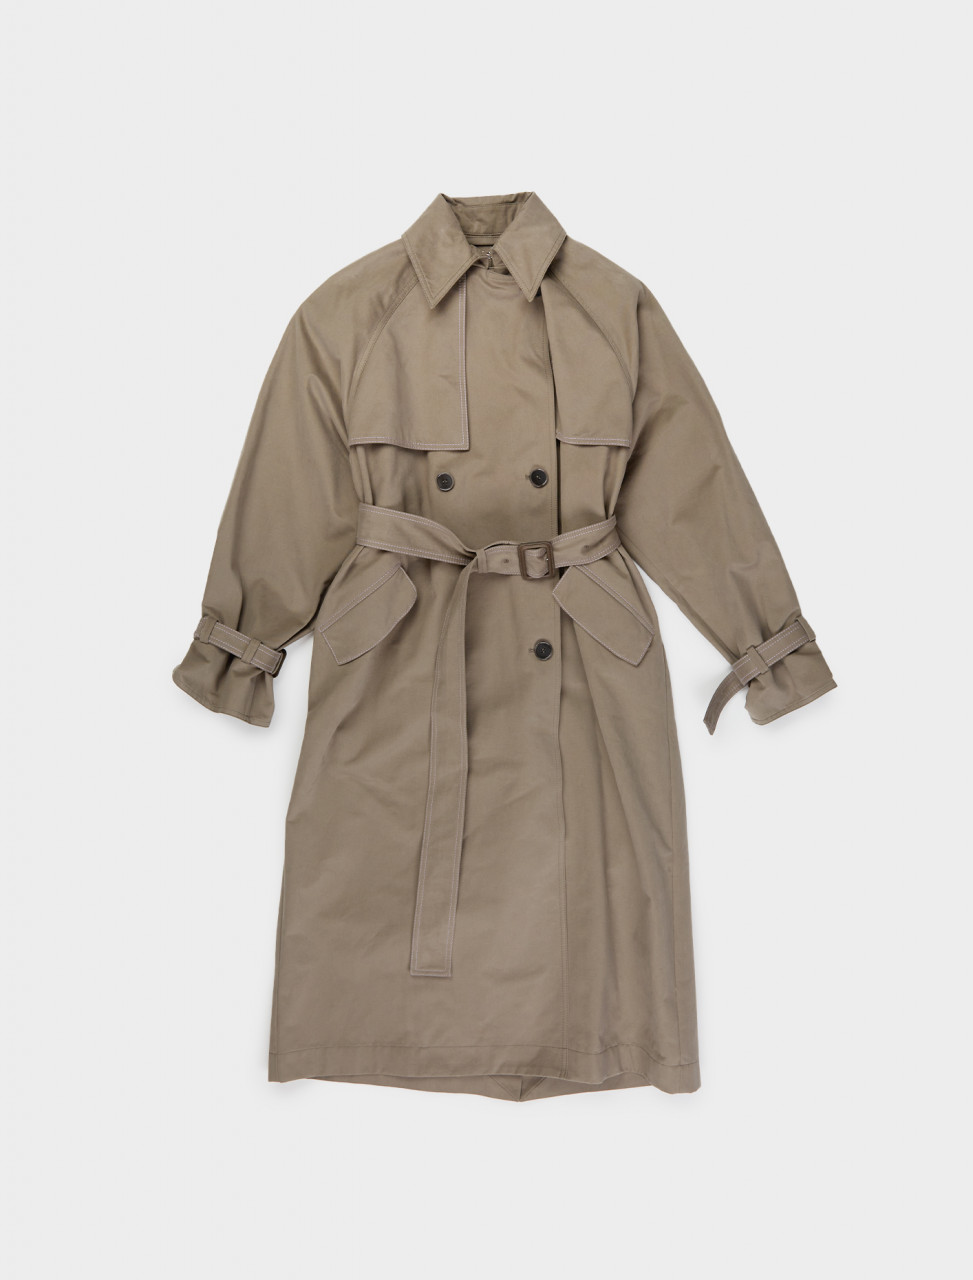 110-A90303-AA7 ACNE STUDIOS DOUBLE BREASTED TRENCH COAT IN STONE GREY